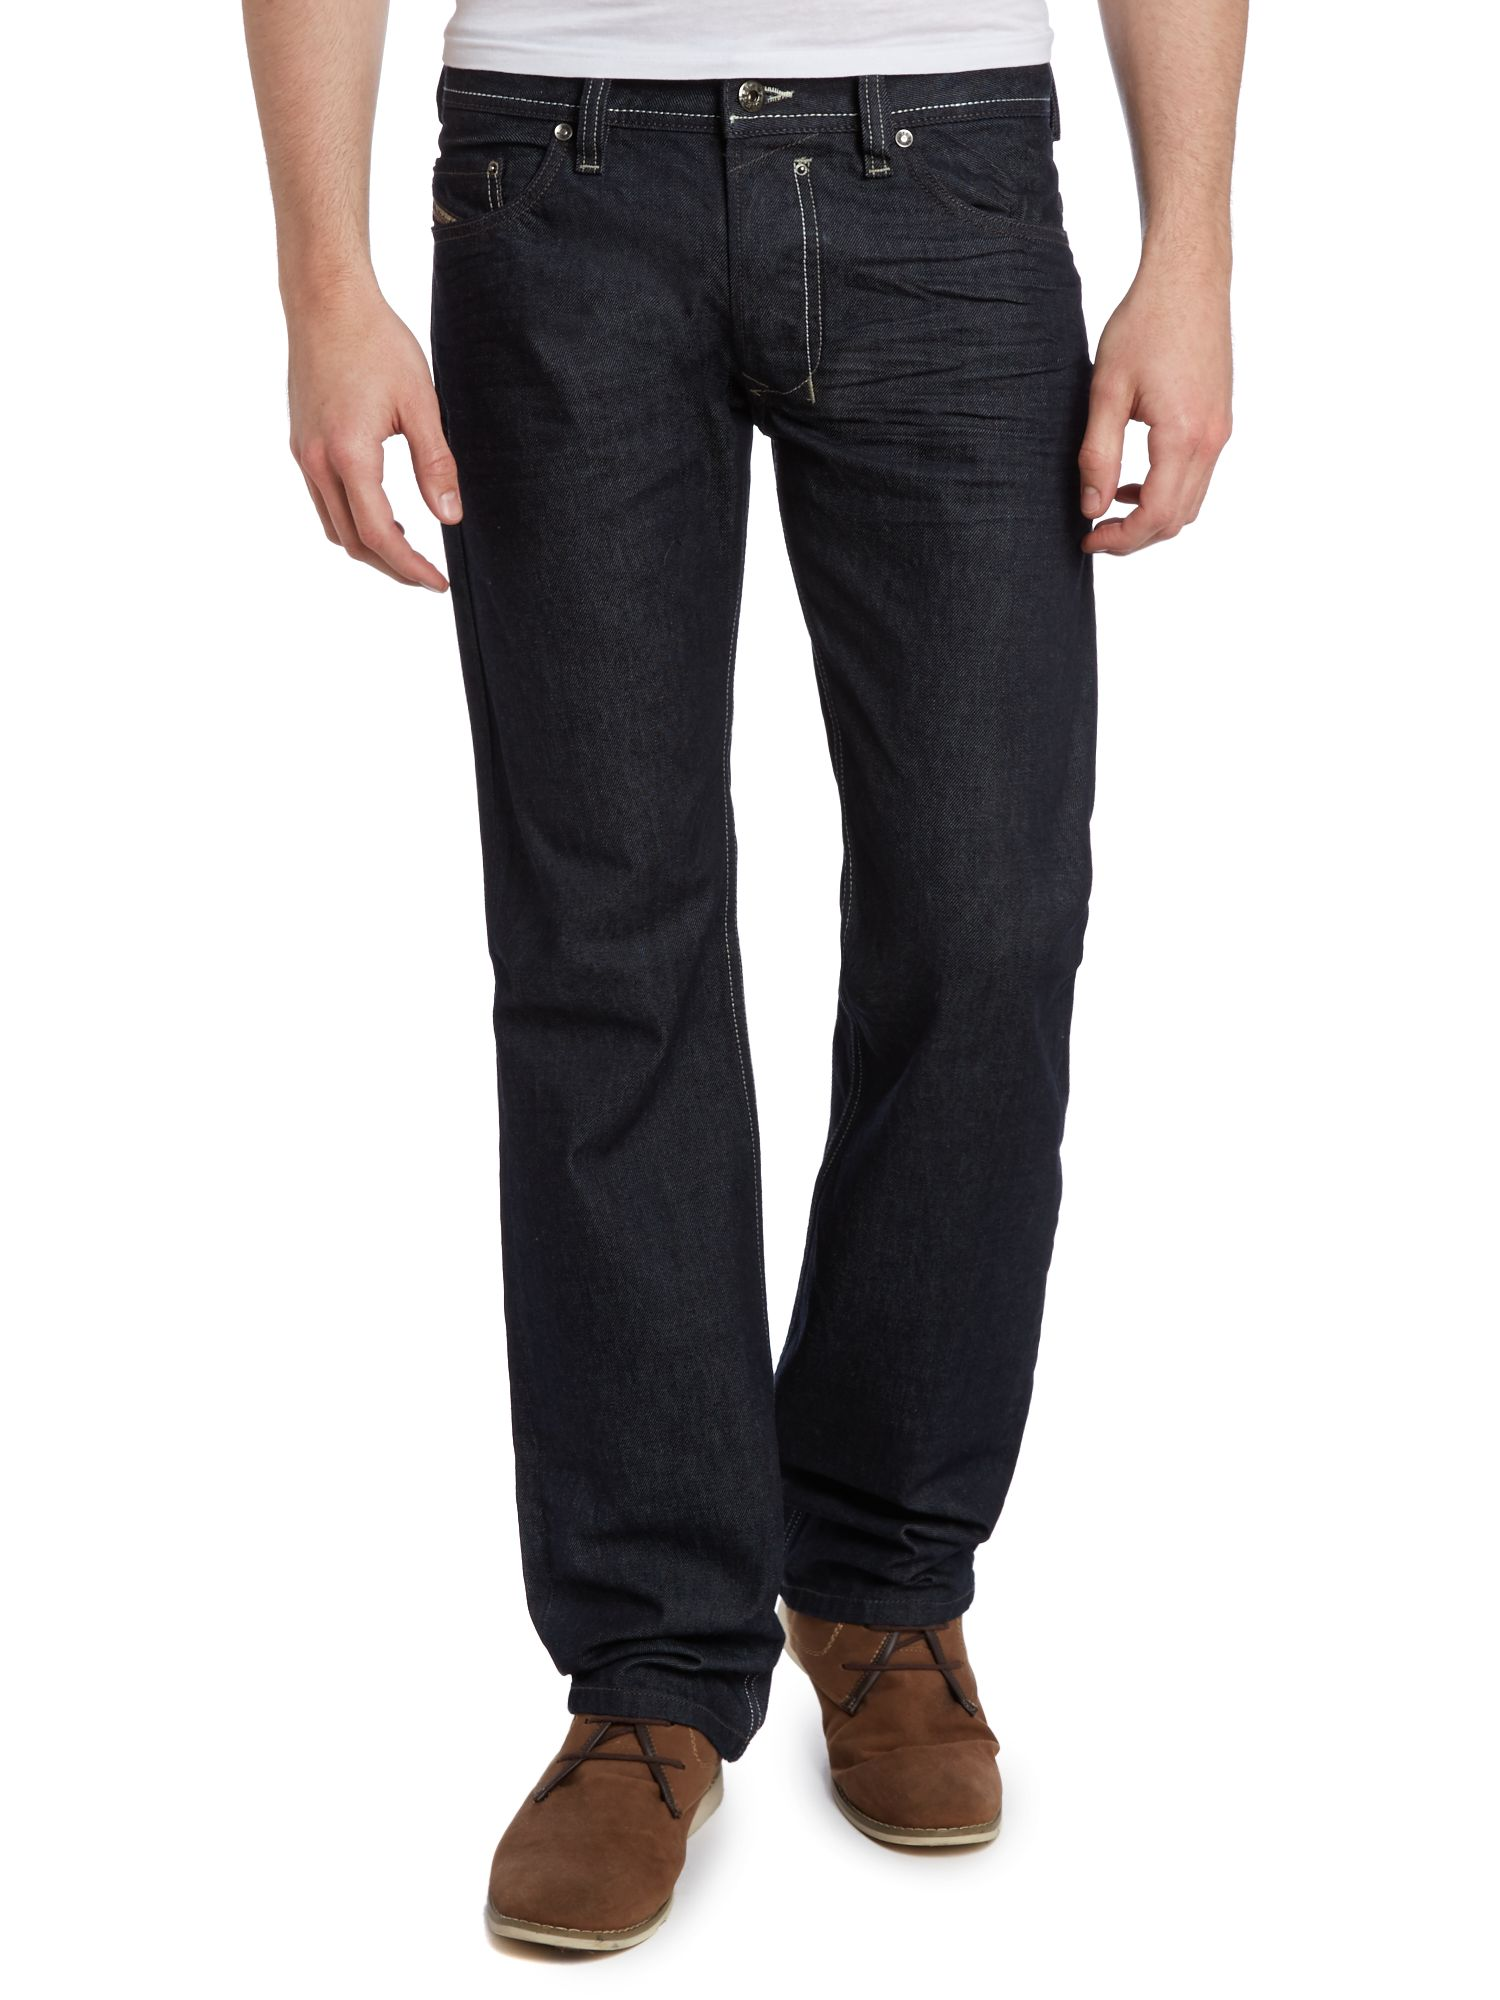 Safado 8Z8 straight leg dark wash jean